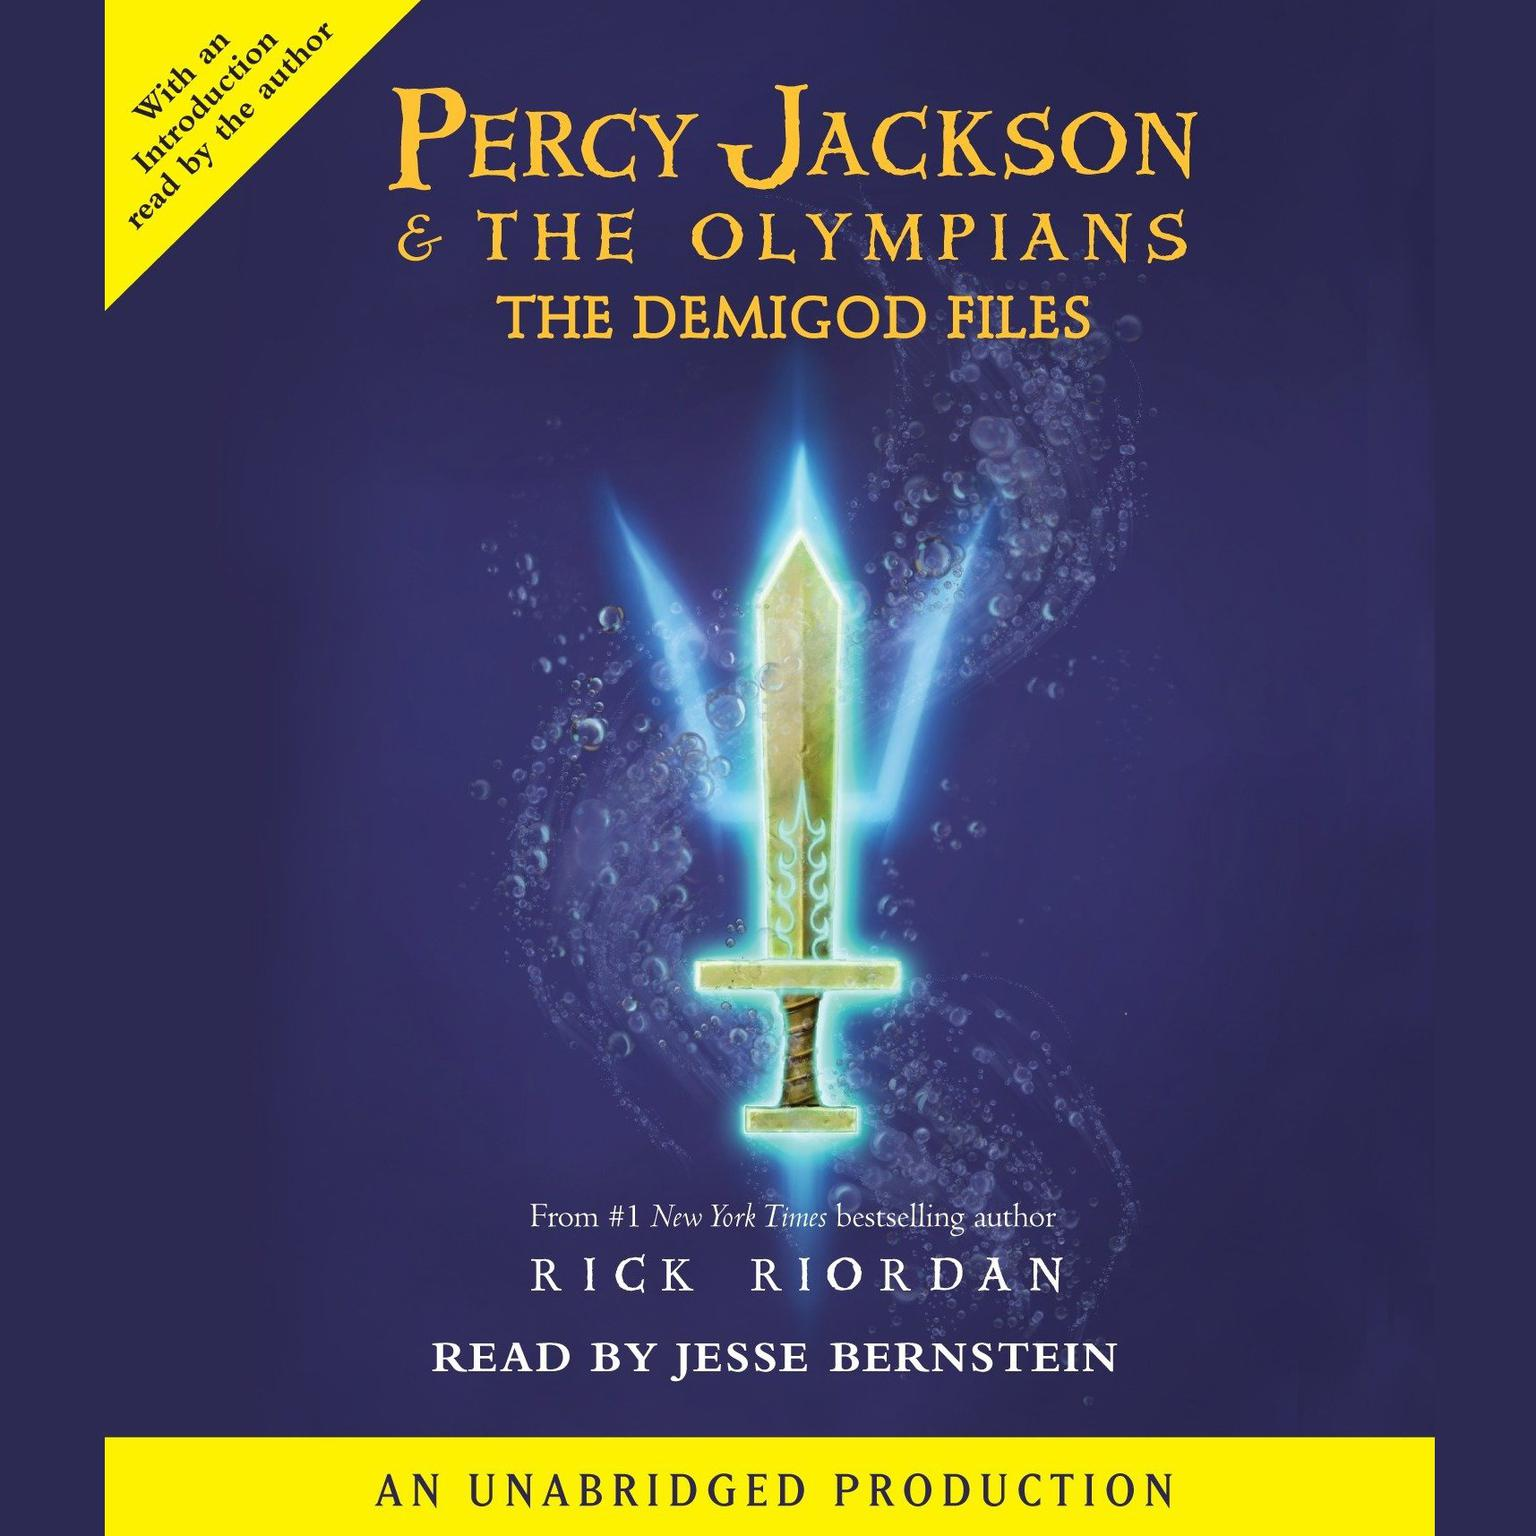 Printable Percy Jackson: The Demigod Files Audiobook Cover Art